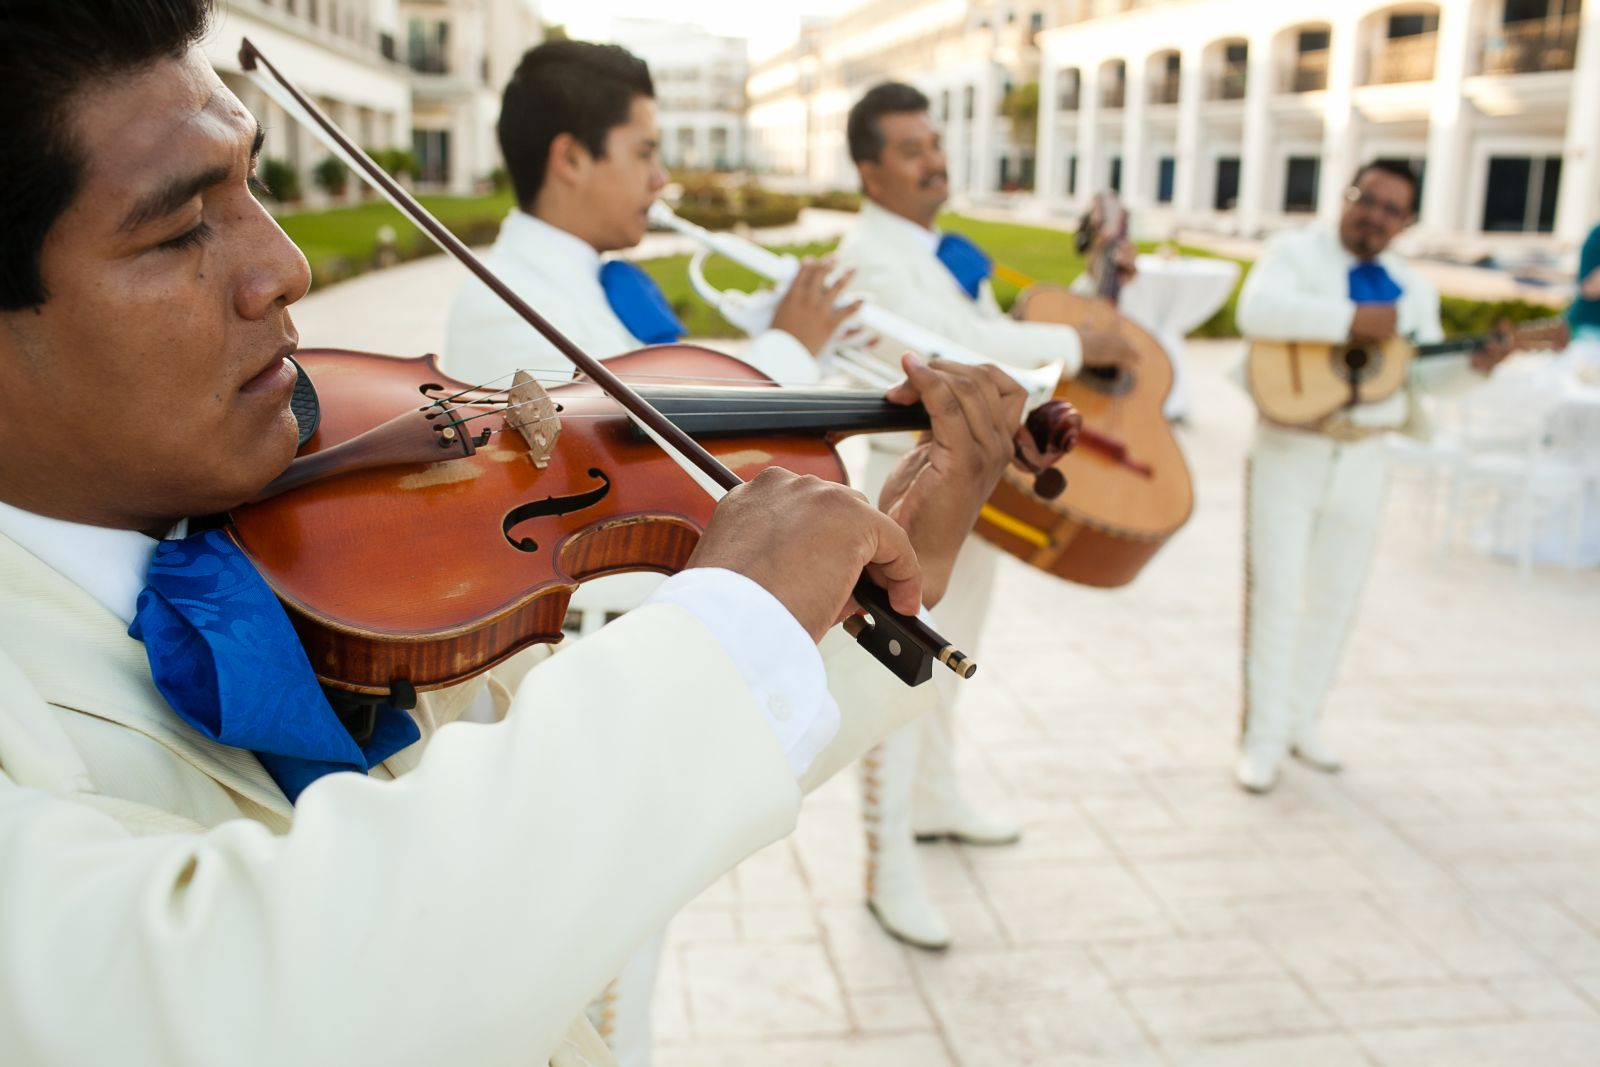 we hired a mariachi band to play a 45-minute set during cocktail hour, many of the guests said that was their favorite aspect of the reception! The mariachi group was an add-on to the wedding package we got from The Royal Playa del Carmen.